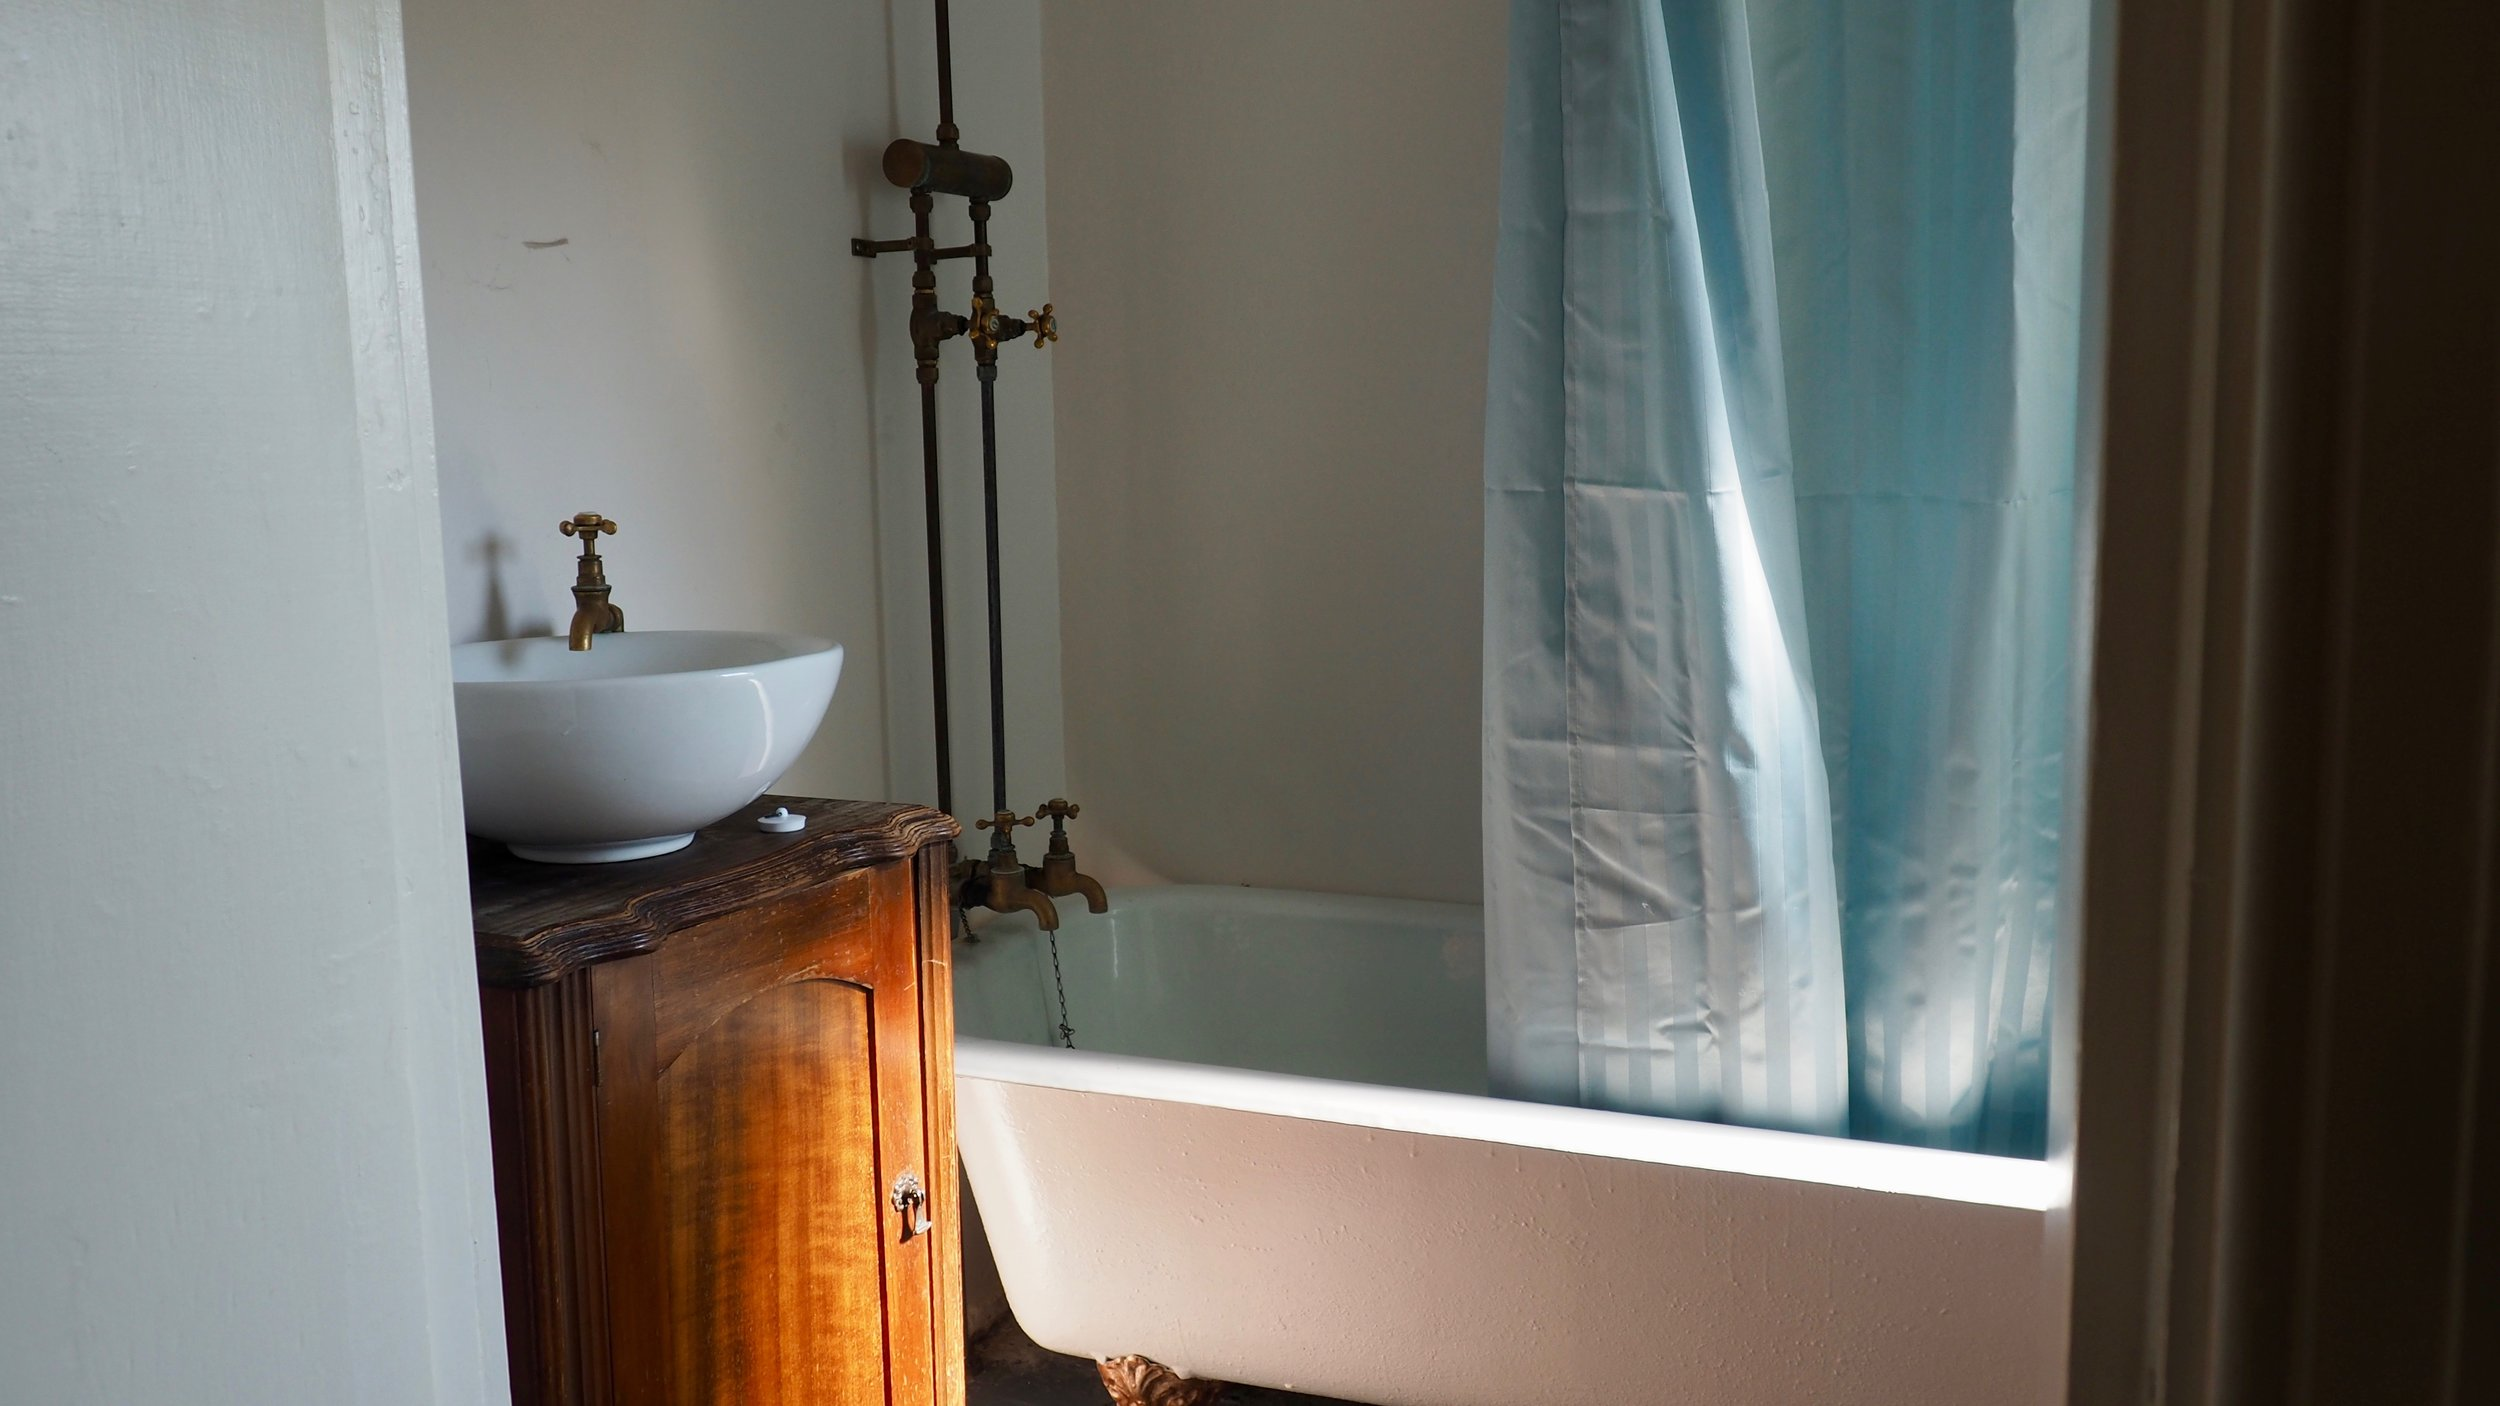 Alice and Caleb Pearson + Projects Renovation Road Trip Charmer in Alexandra Before Renovation DIY The Block NZ - 16.jpg